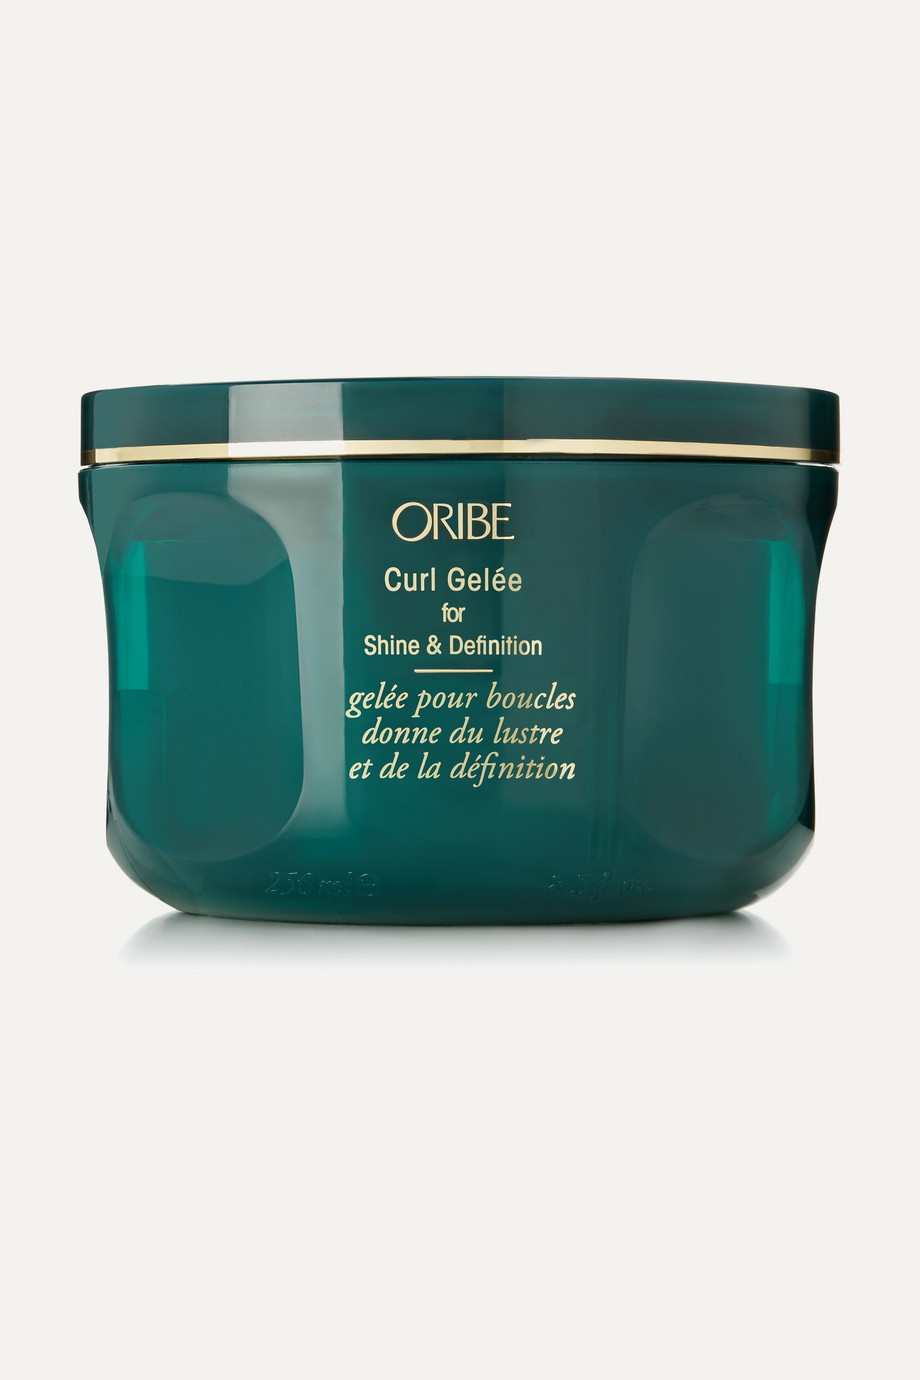 ORIBE Curl Gelée For Shine & Definition, 250ml